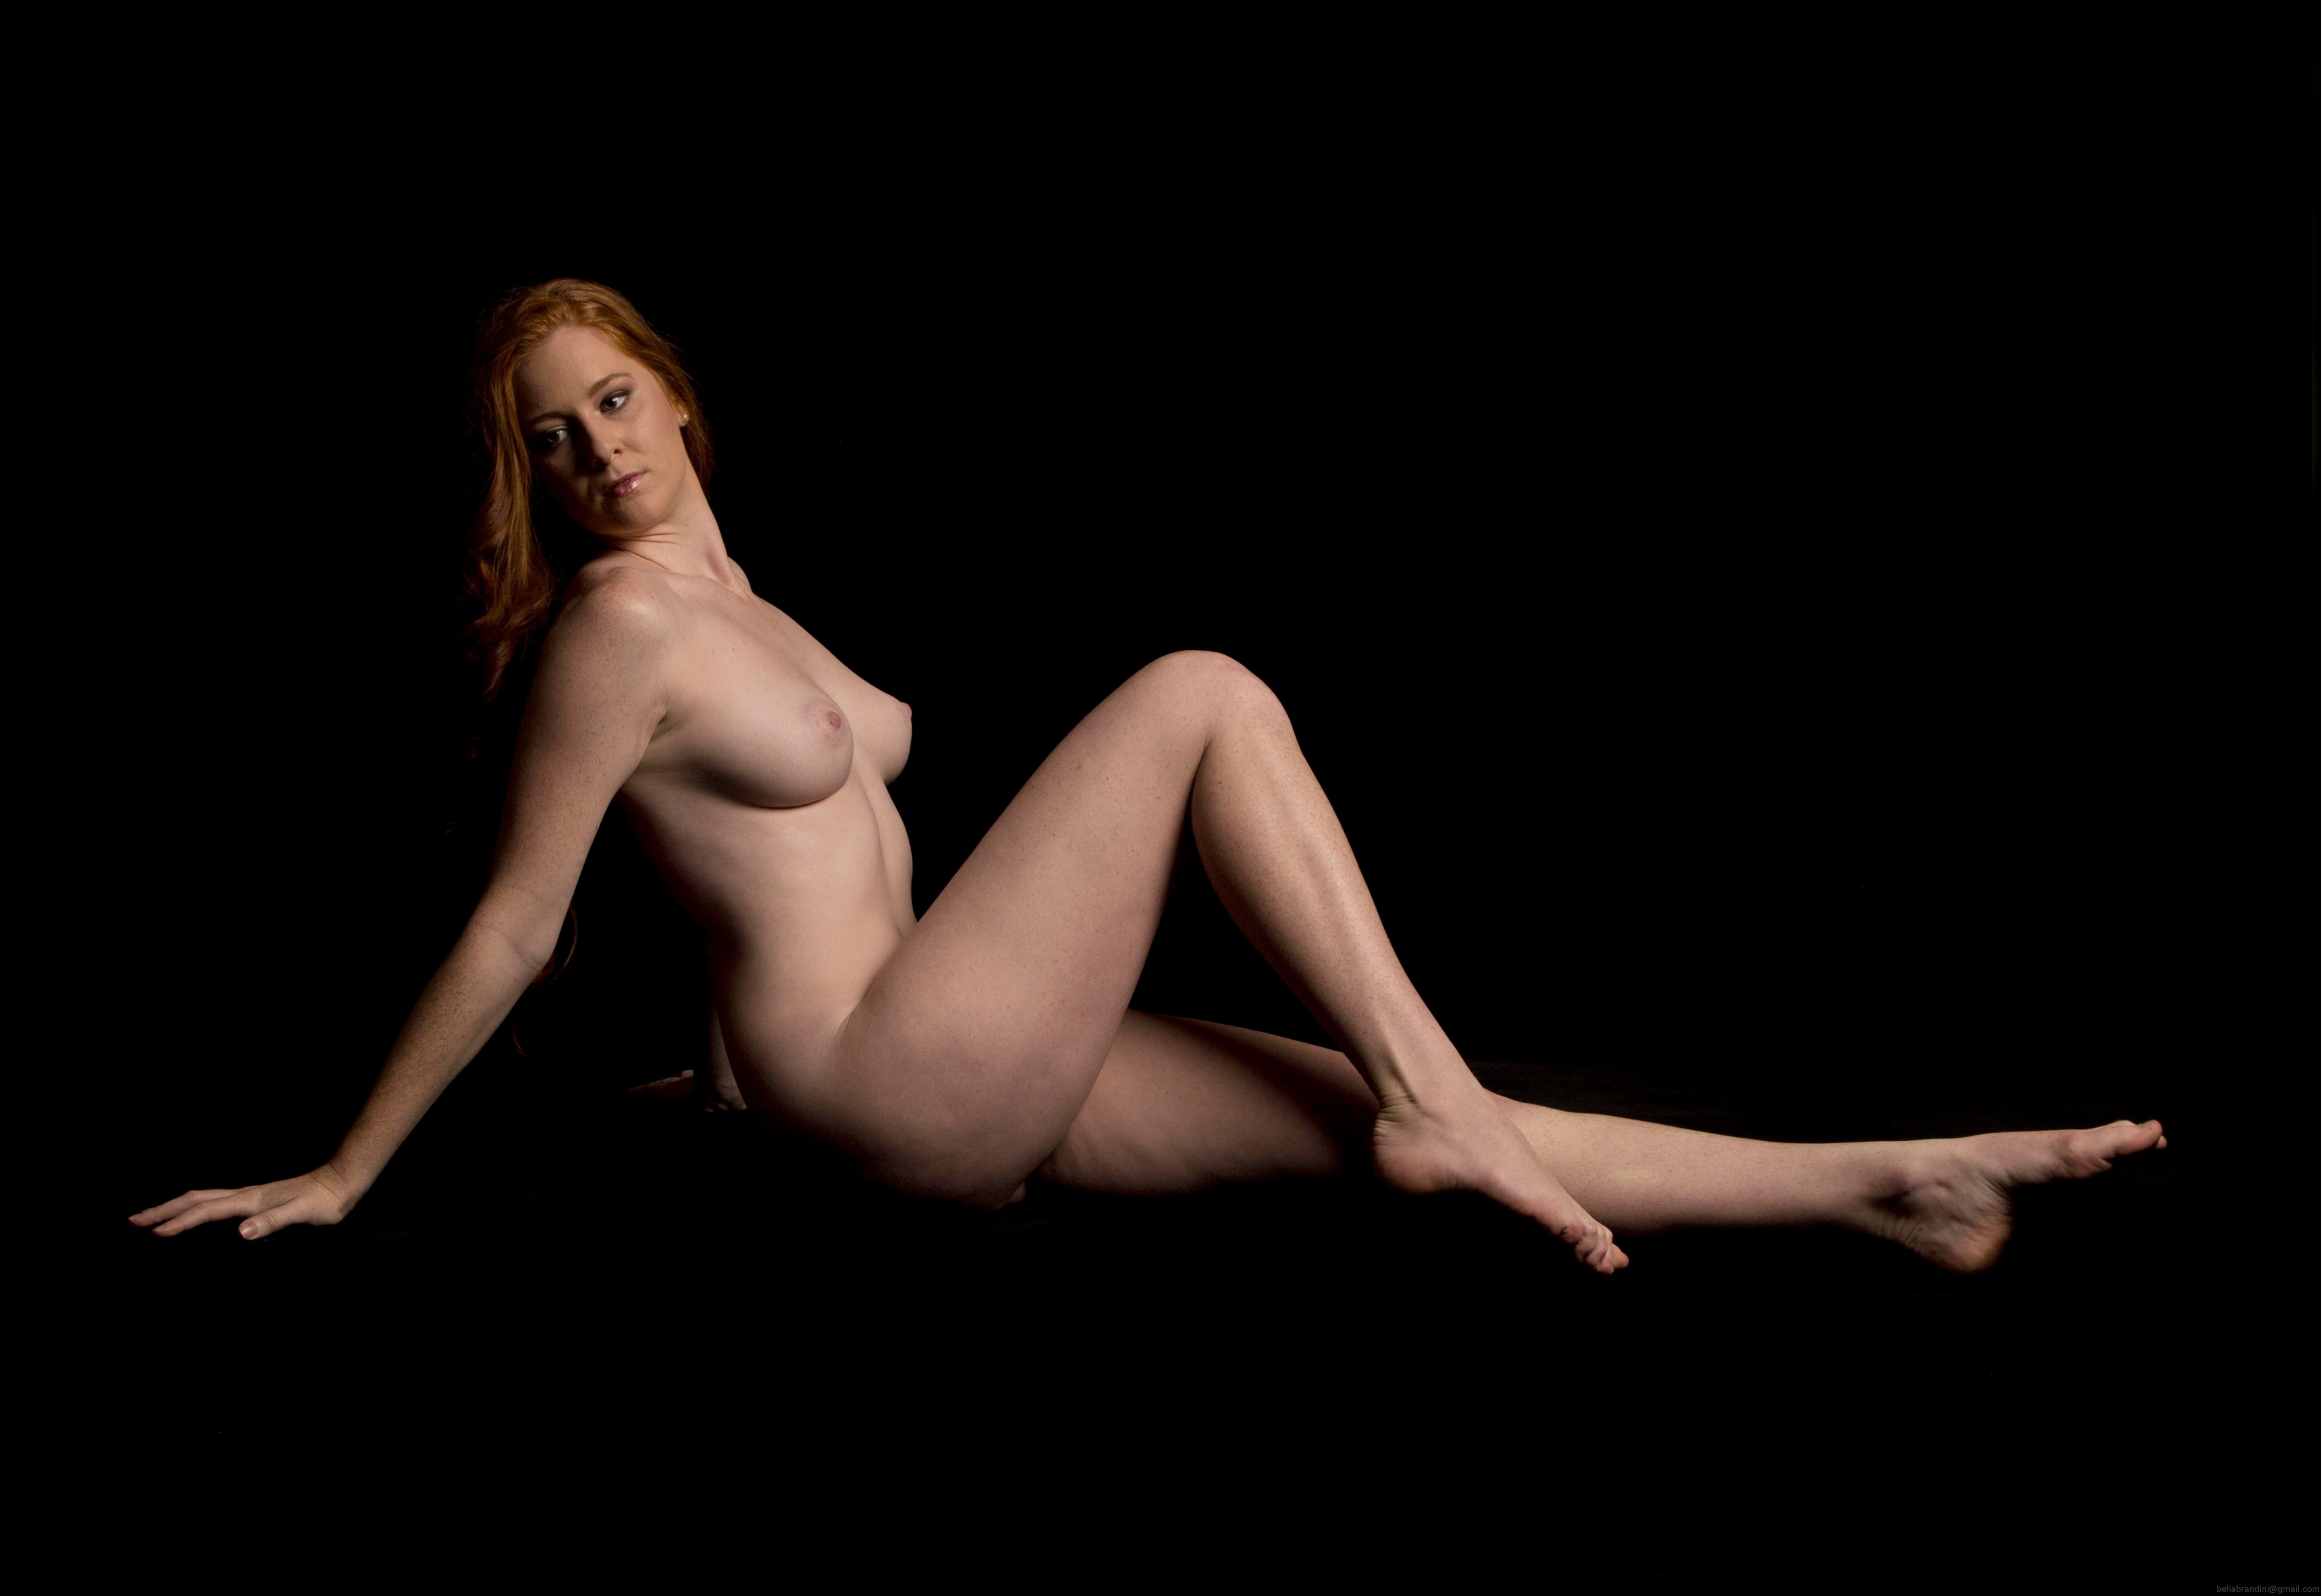 Download photo 1680x1050, aeries, brunette, nude, naked ...